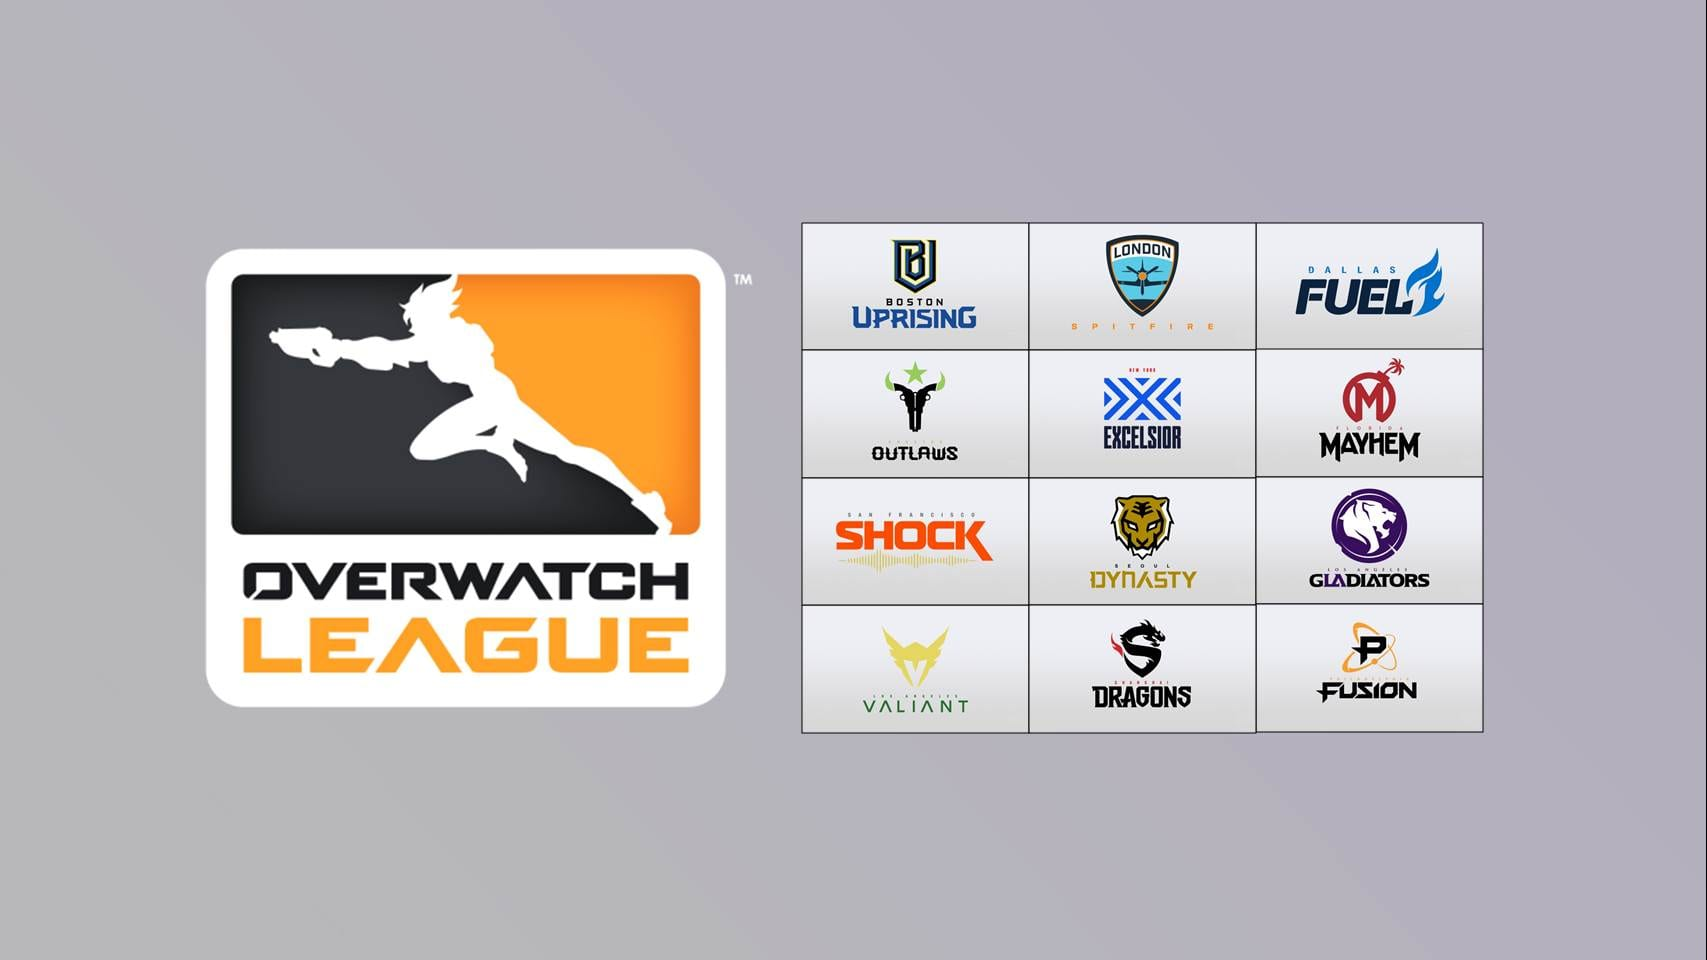 Overwatch League Logo and Teams